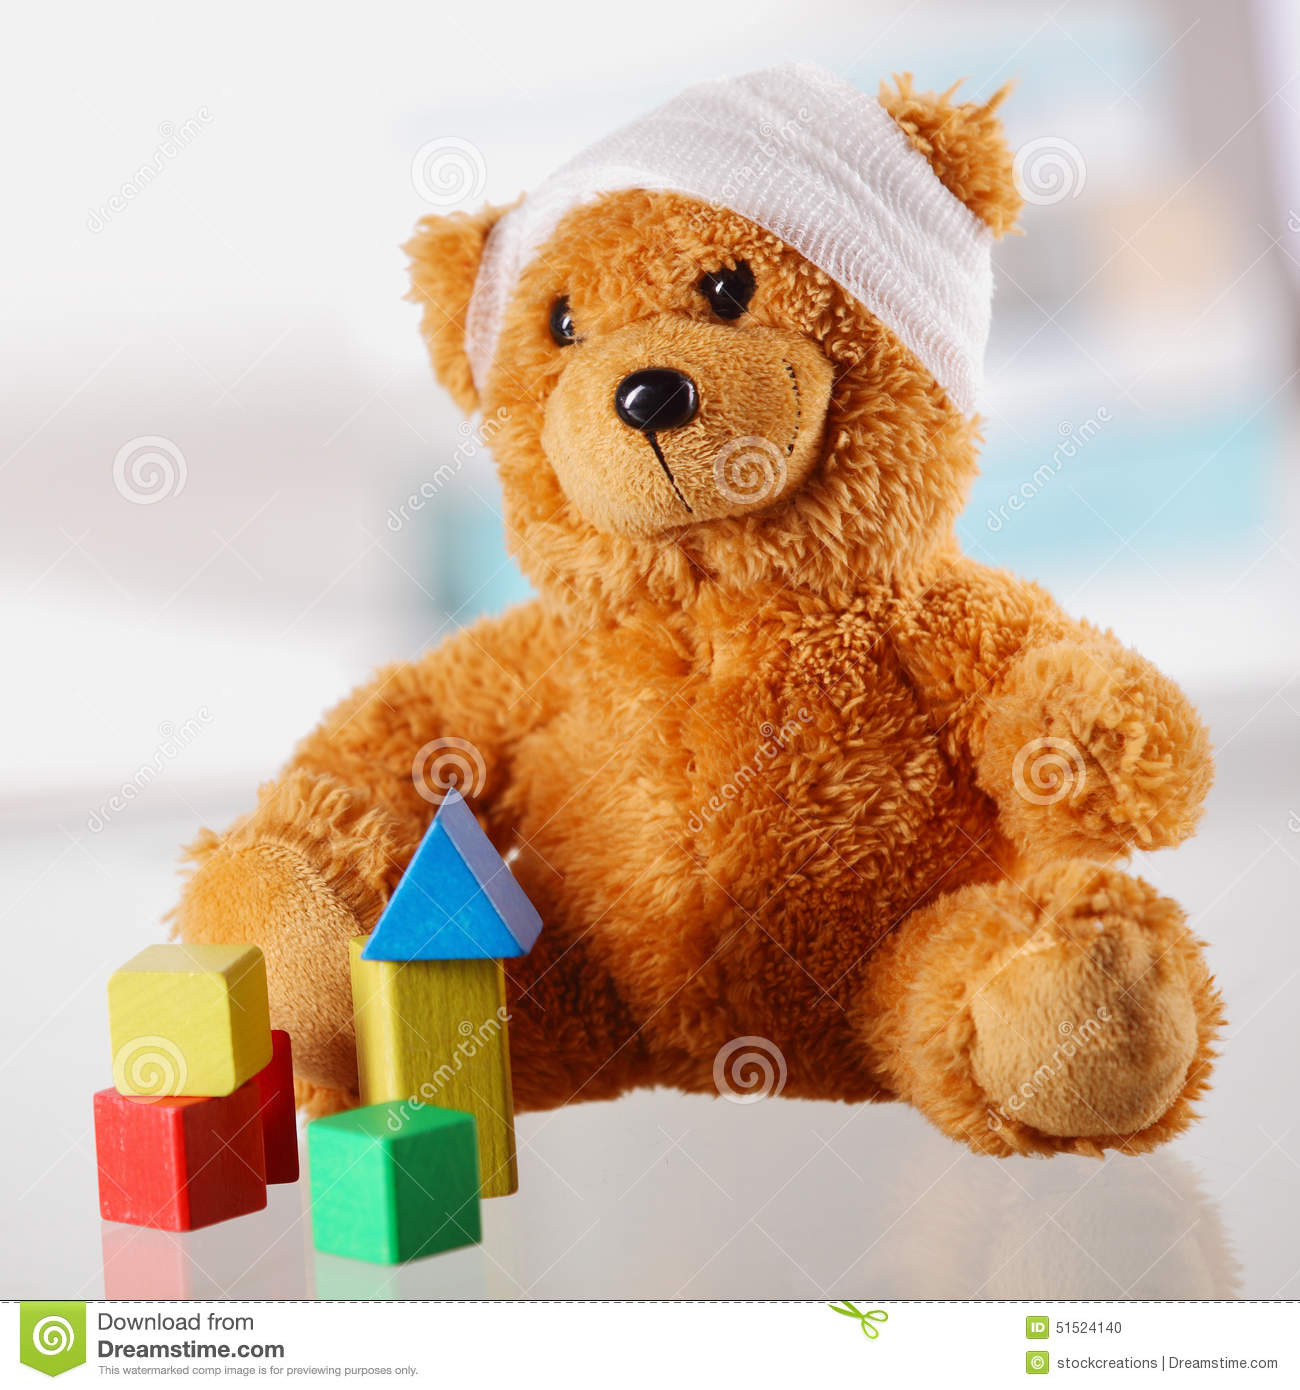 Classic Table Shapes Bandaged Classic Teddy Bear With Various Shapes Stock Photo